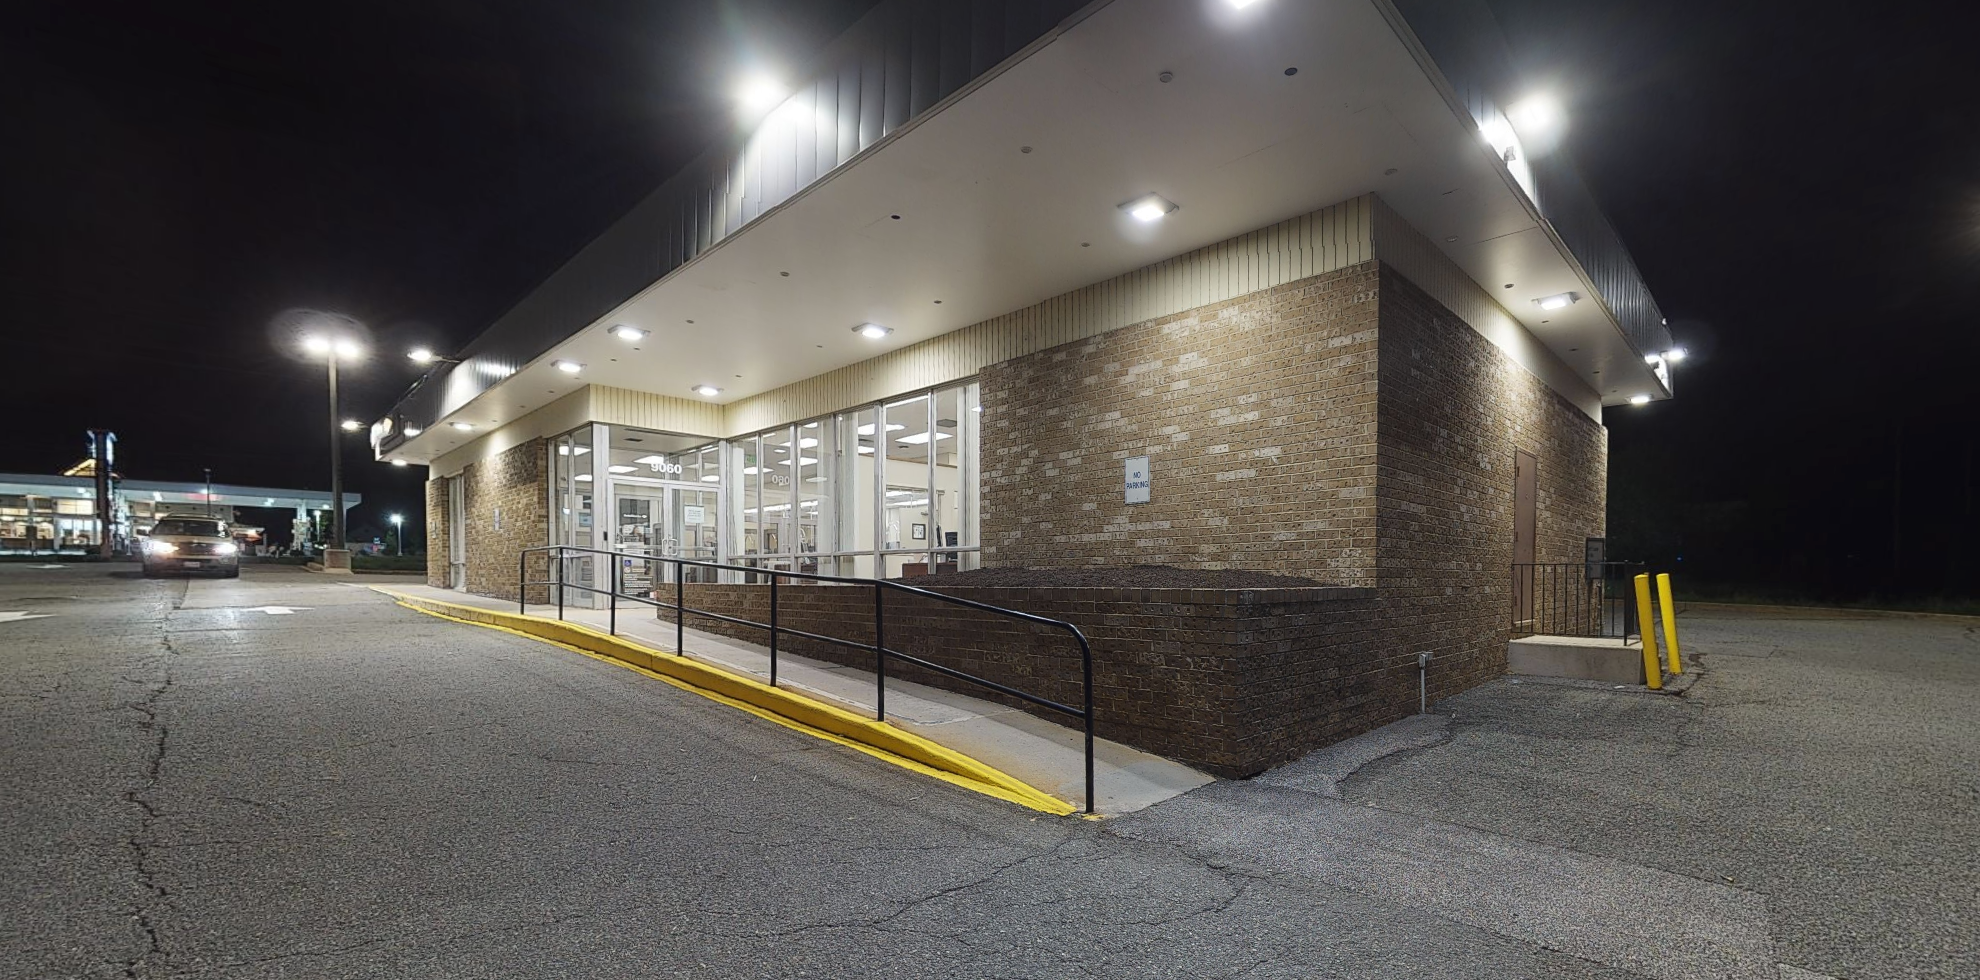 Bank of America financial center with drive-thru ATM | 9060 Liberty Rd, Randallstown, MD 21133